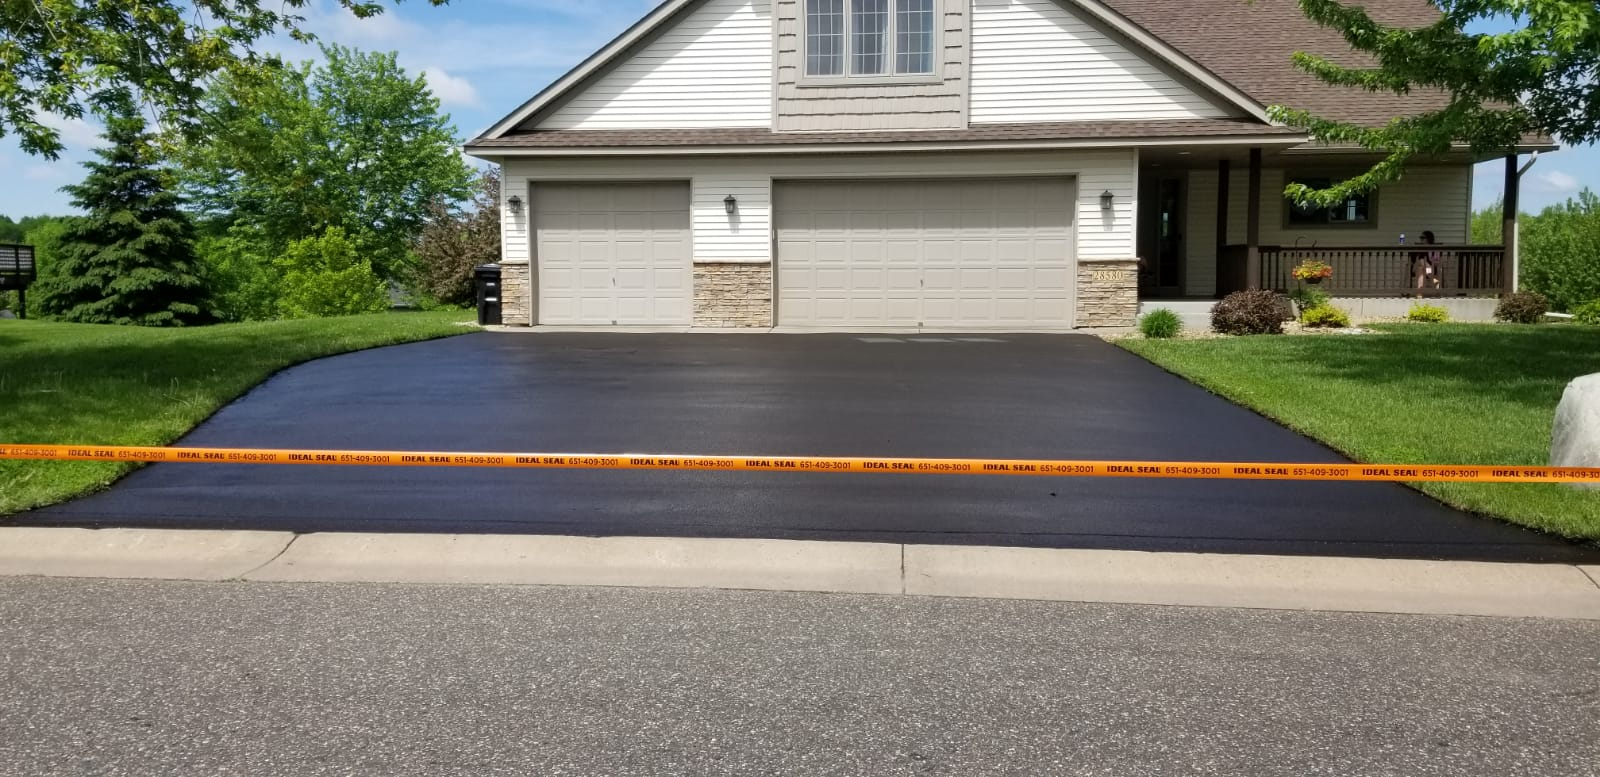 Things You Should Know About Resealing Your Driveway